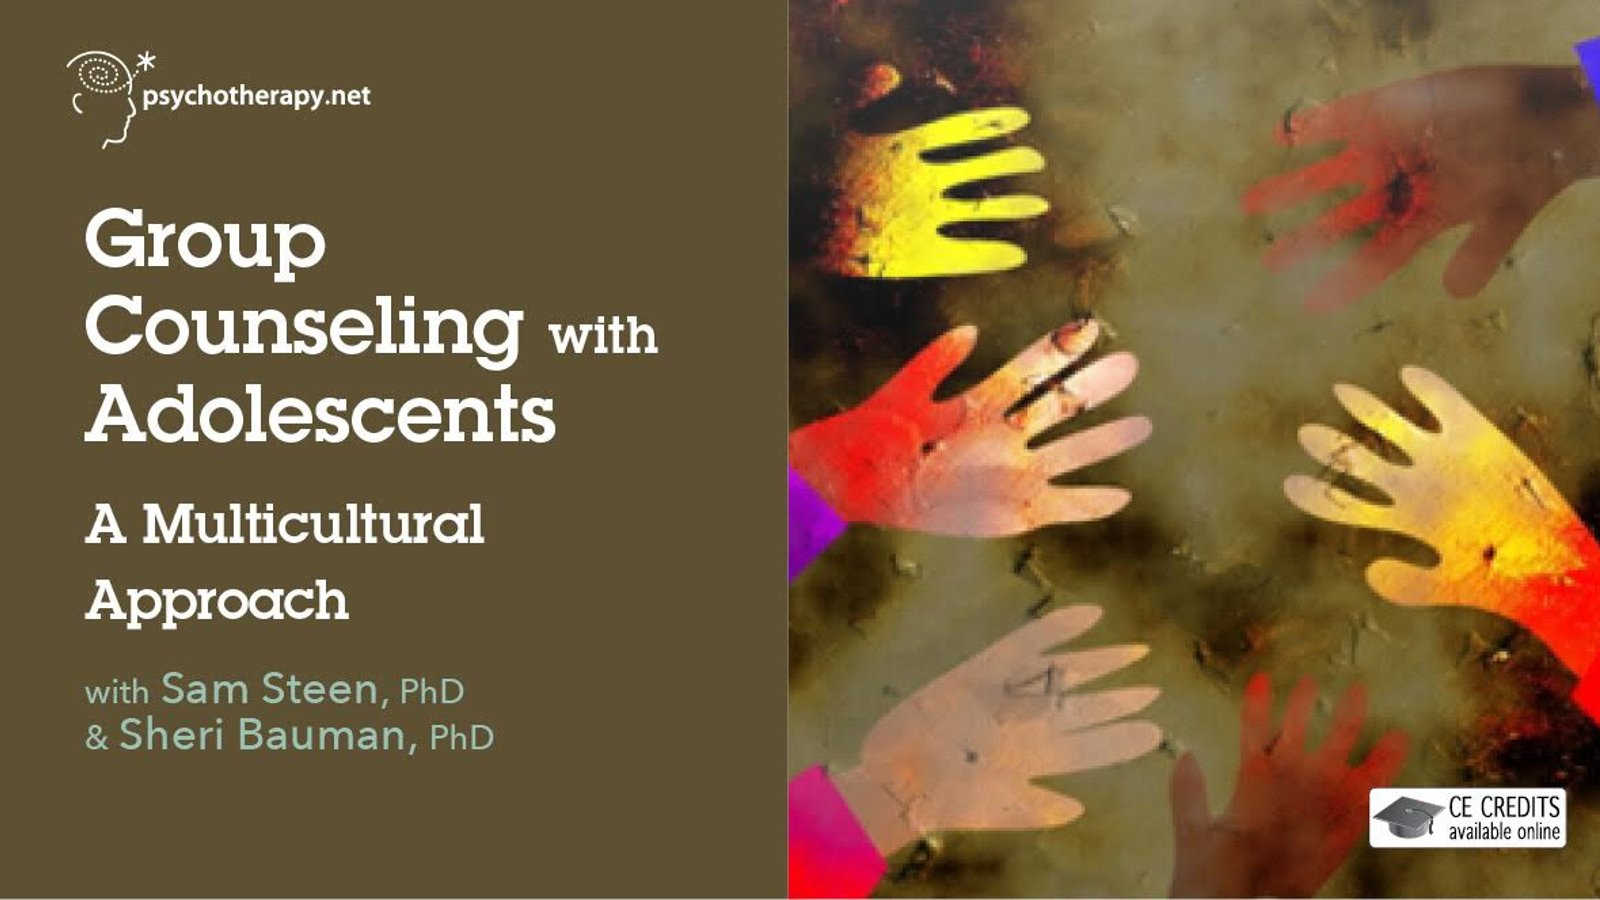 Group Counseling with Adolescents - A Multicultural Approach